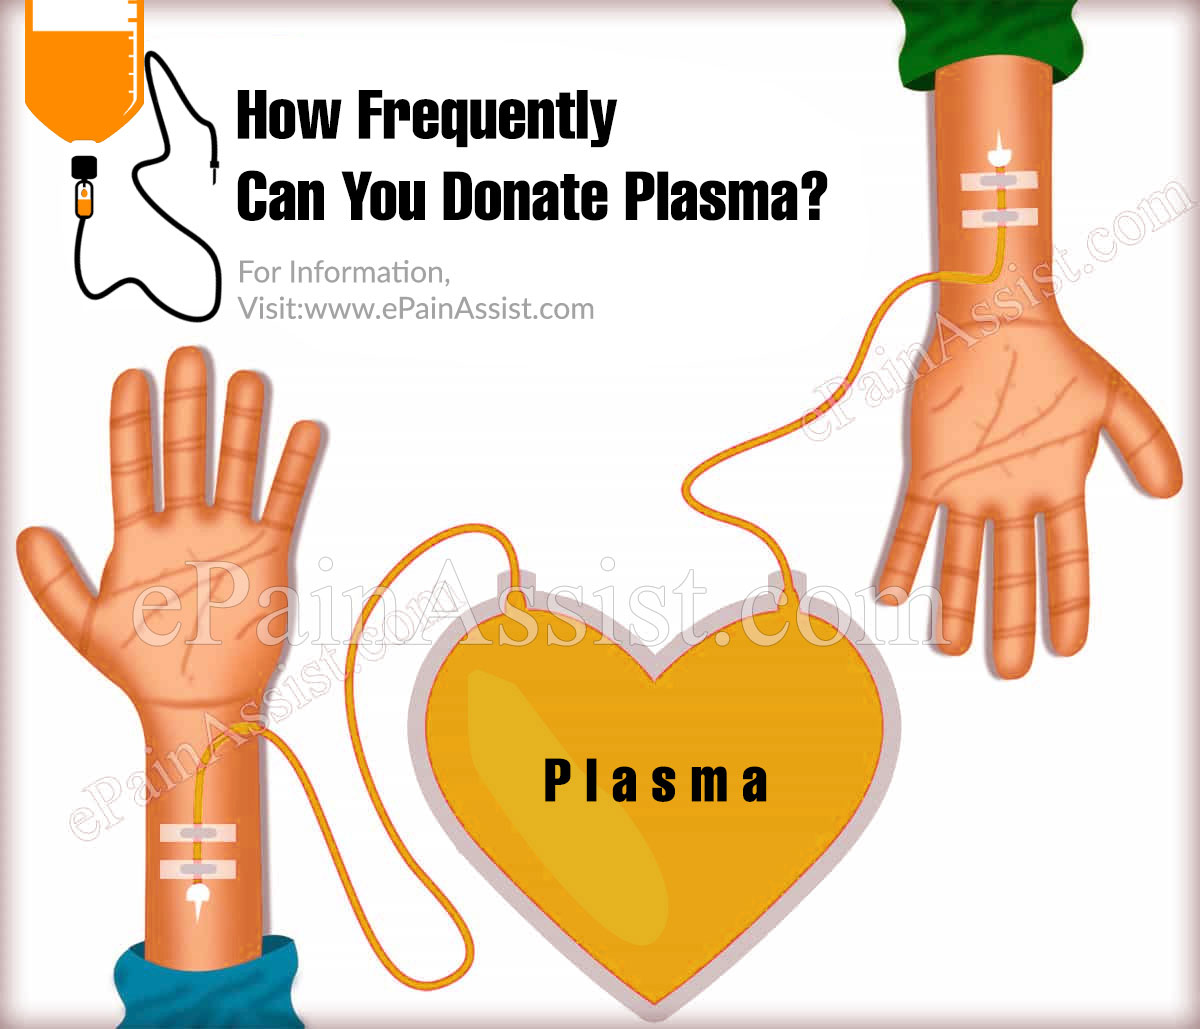 How Frequently Can You Donate Plasma?